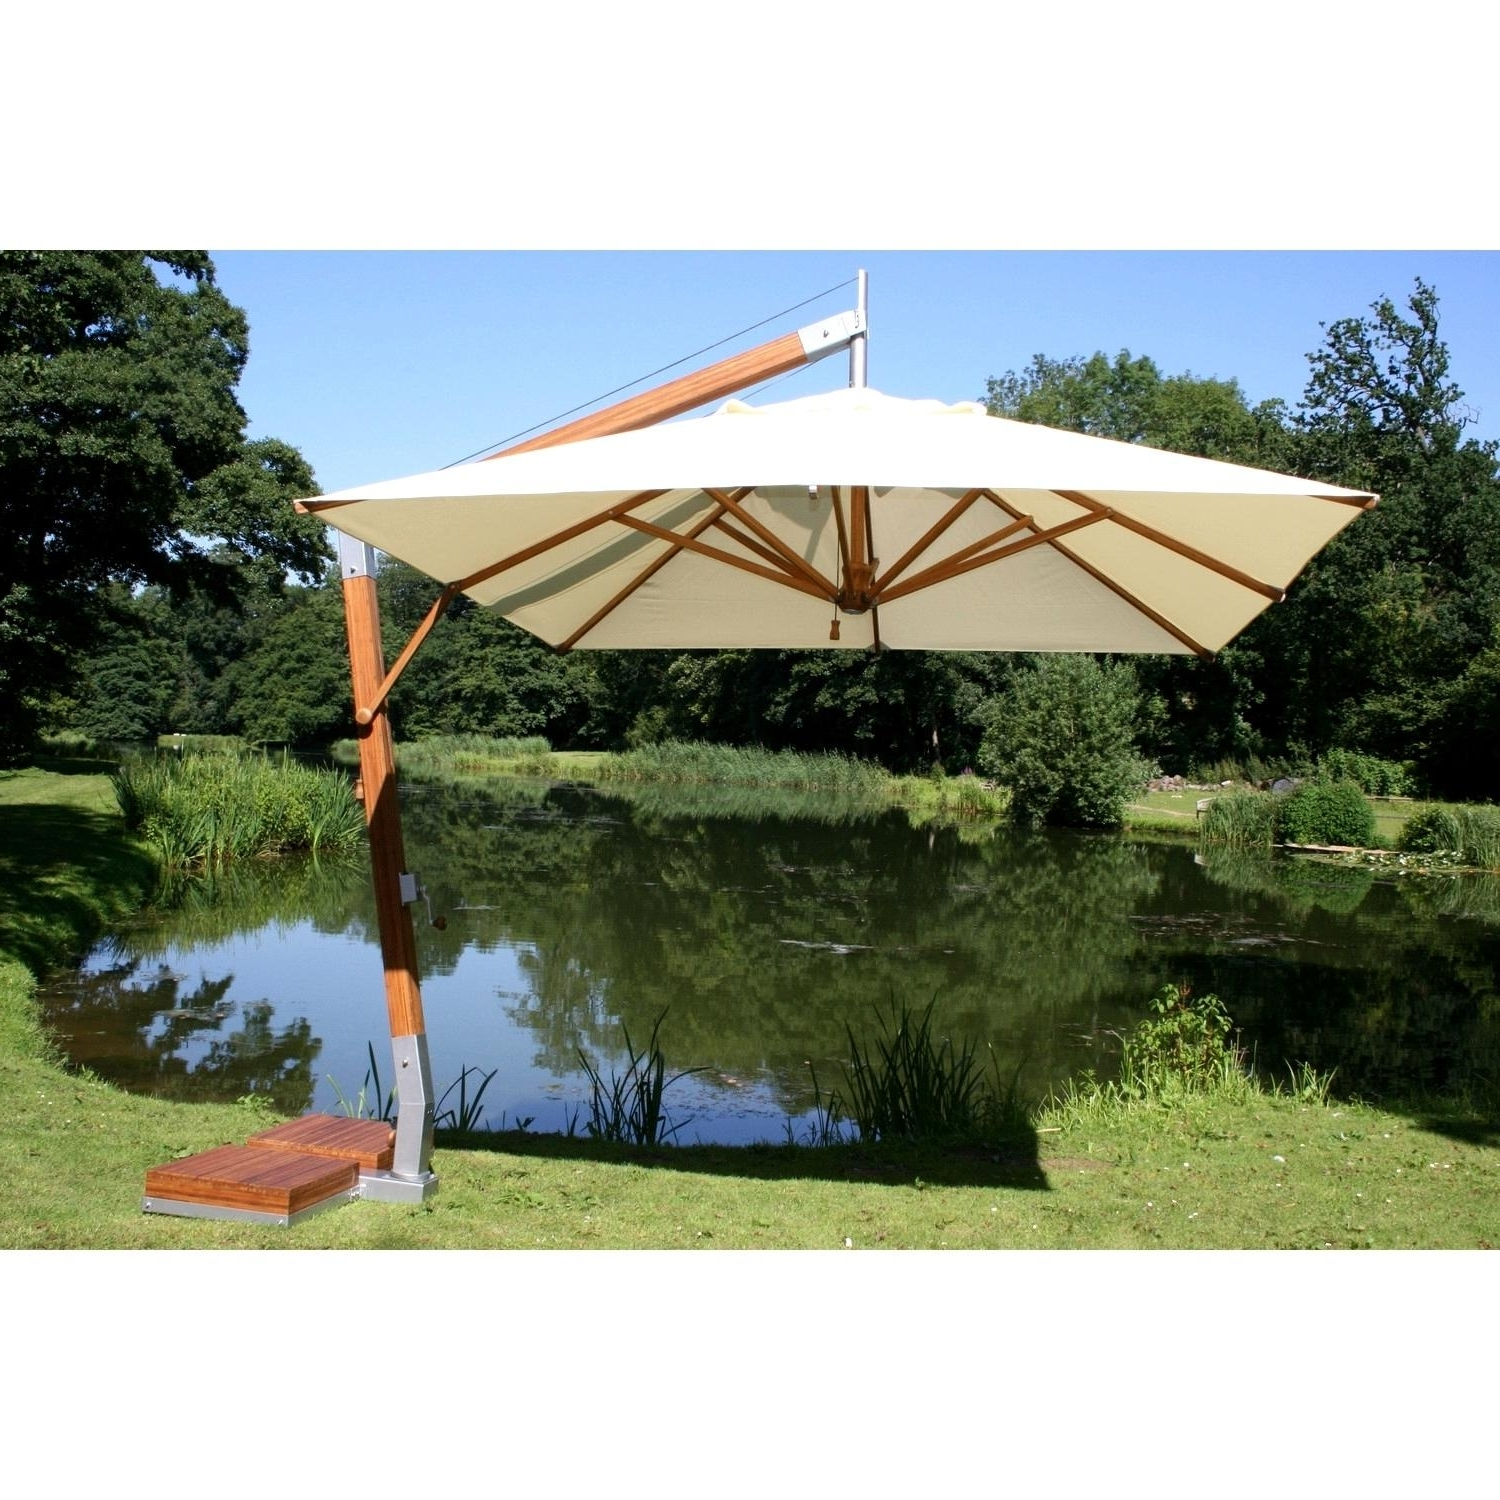 Rectangular Offset Patio Umbrellas Pertaining To 2019 Awesome Bamboo Cantilever Umbrella Patio Umbrellas Set Umbrella (Gallery 8 of 20)